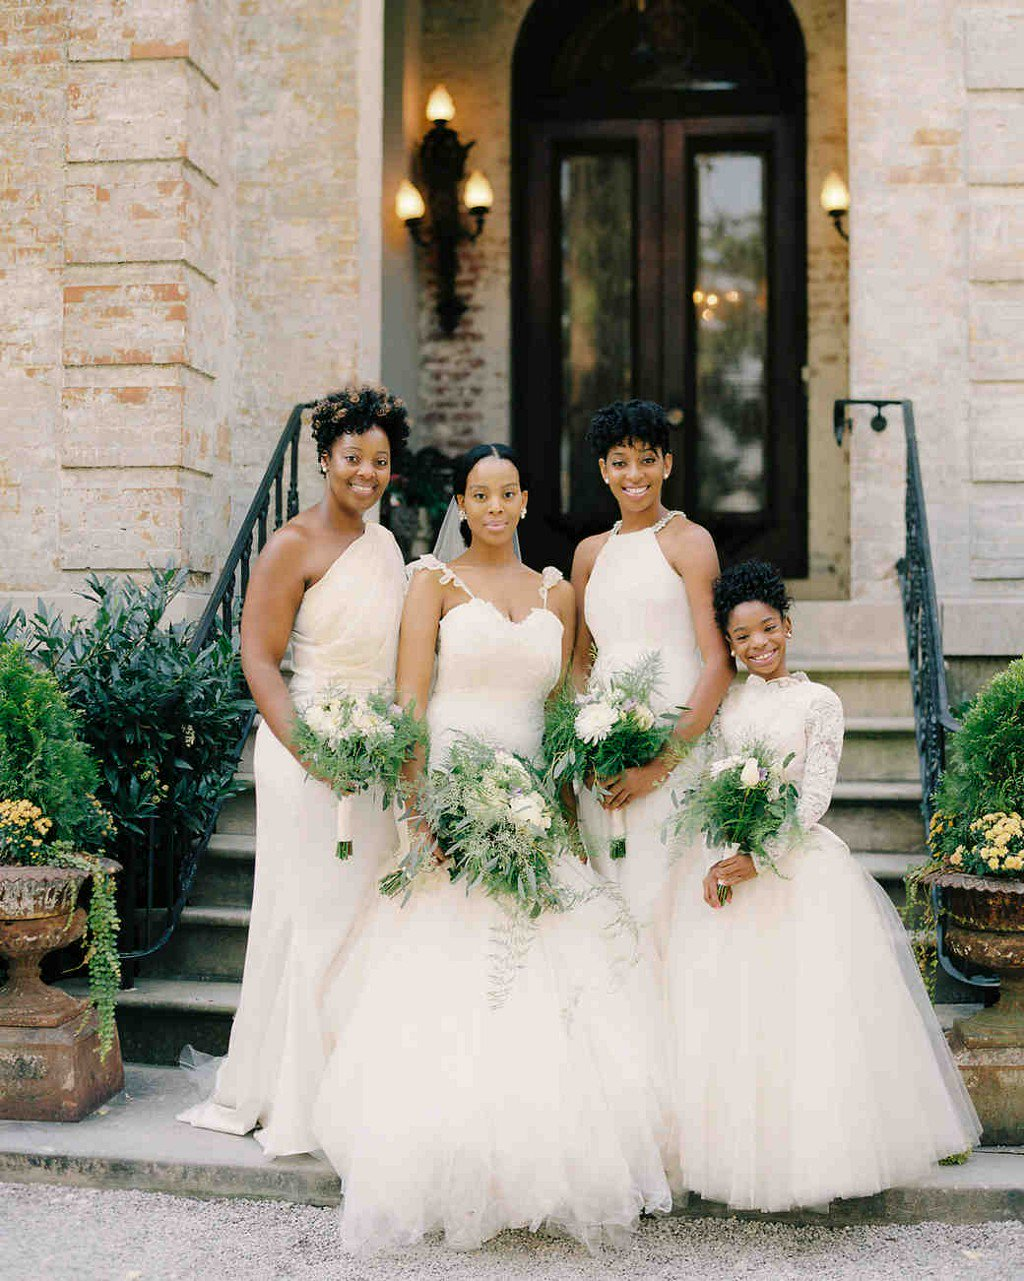 26 Chic Bridal Parties Wearing All-White Dresses https://t.co/arfrNmKBSZ https://t.co/QDU6k4yBLi